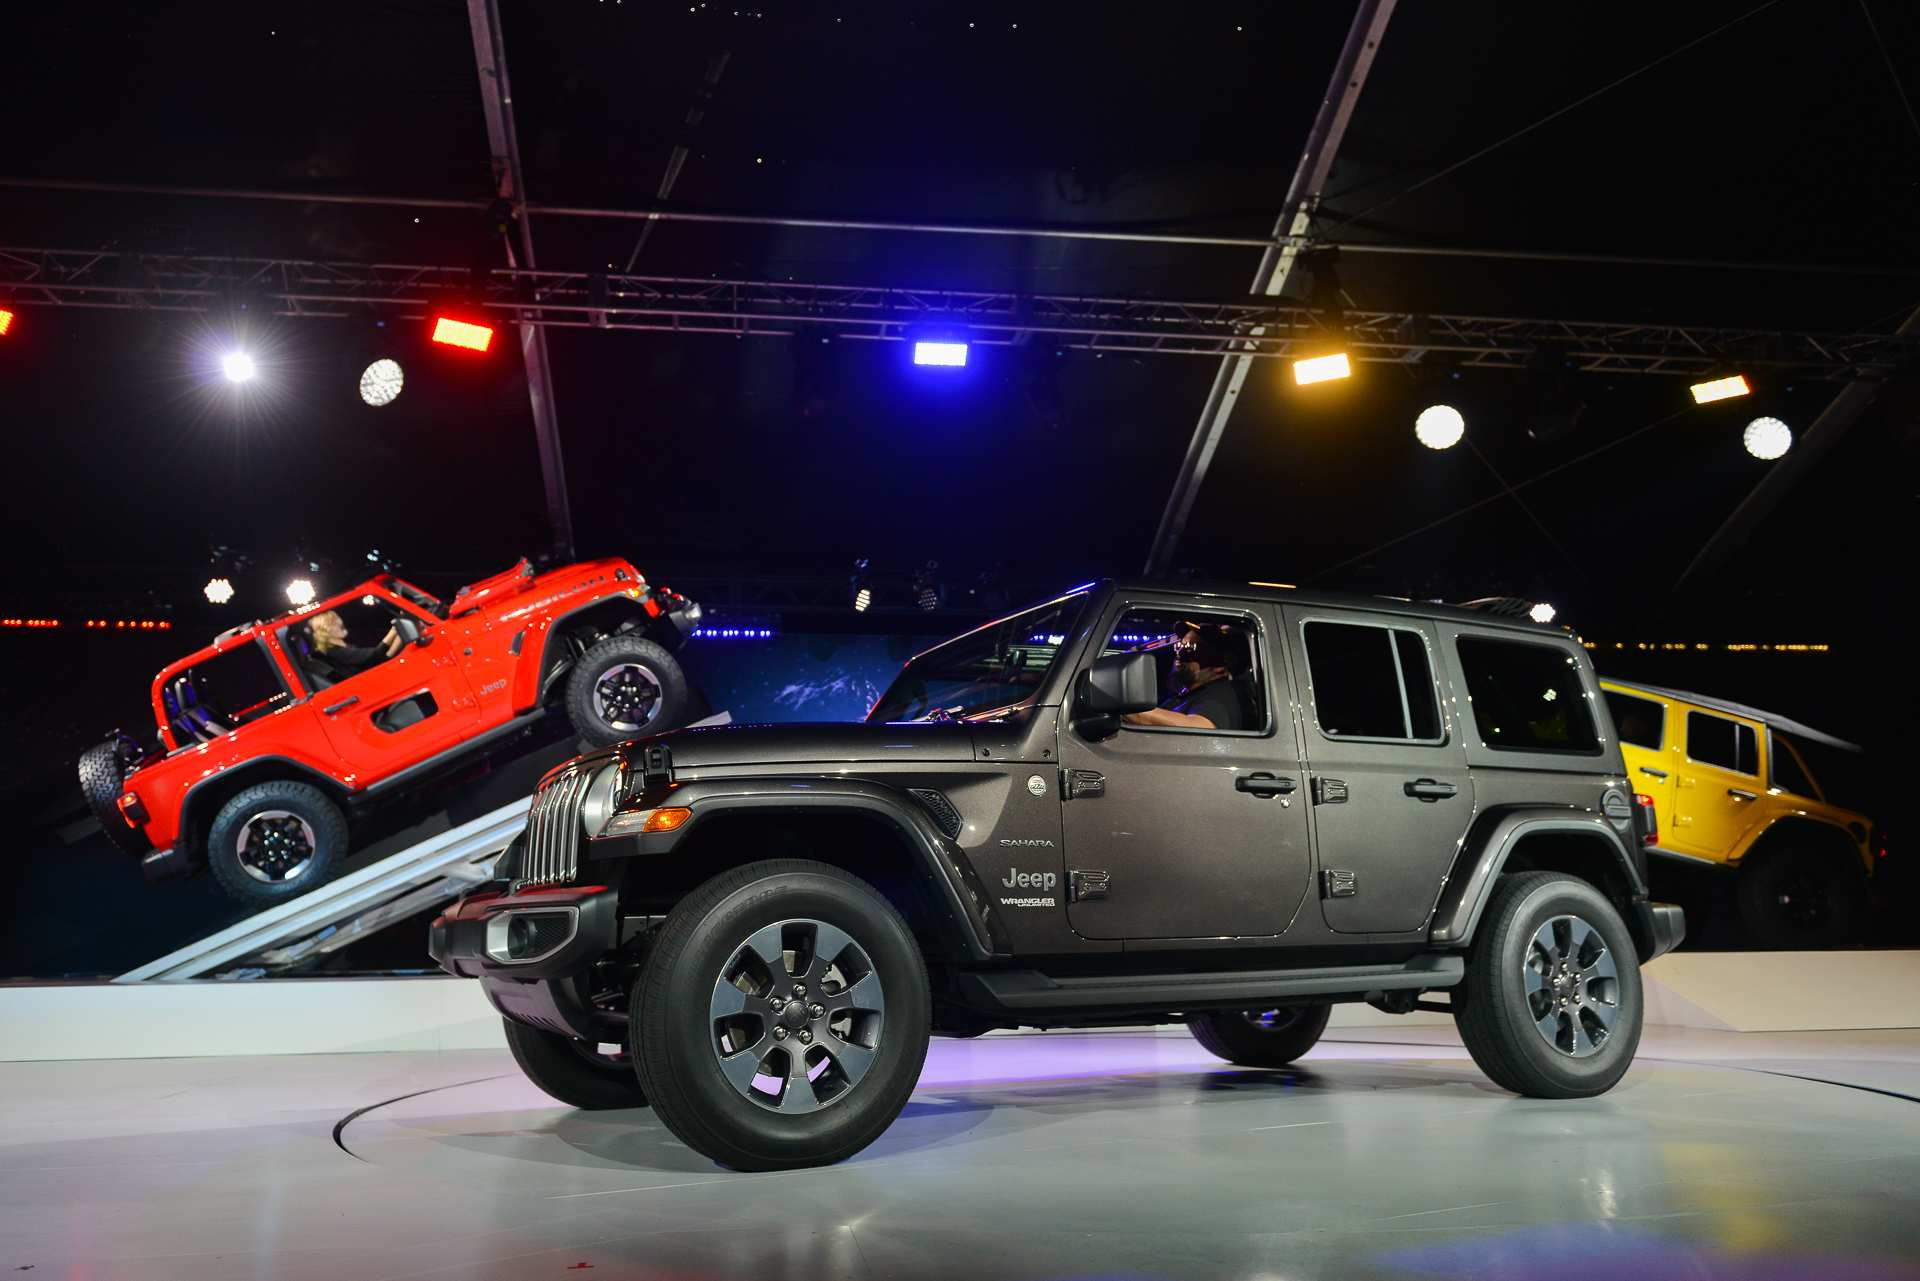 51 Great Jeep Hybrid 2020 Pictures by Jeep Hybrid 2020